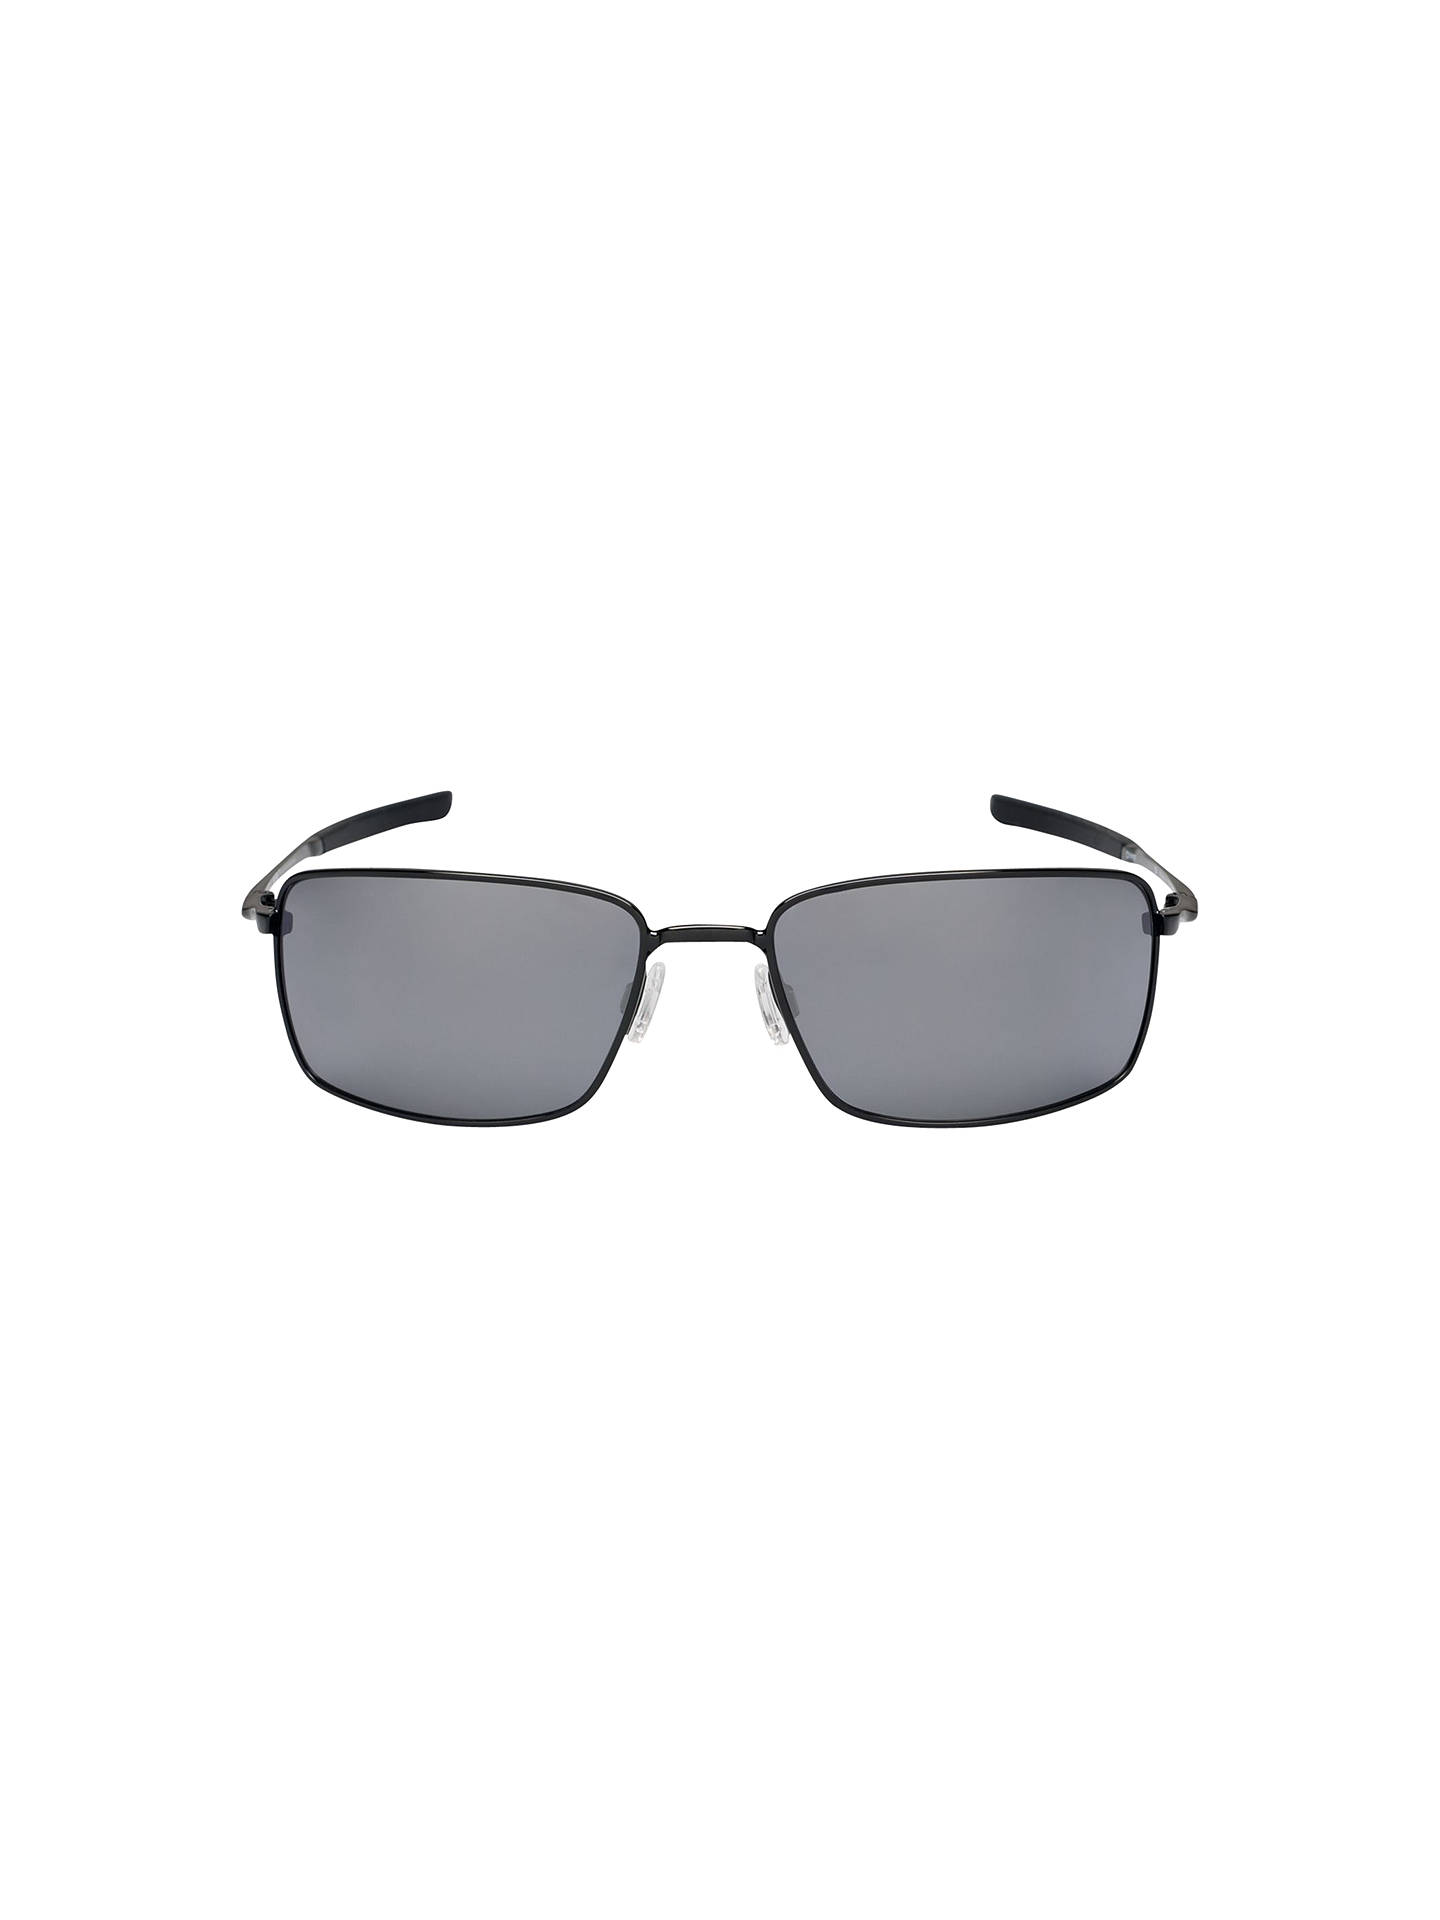 BuyOakley OO4075 Square Wire™ Rectangular Frame Sunglasses, Polished Black/Black Iridium Online at johnlewis.com